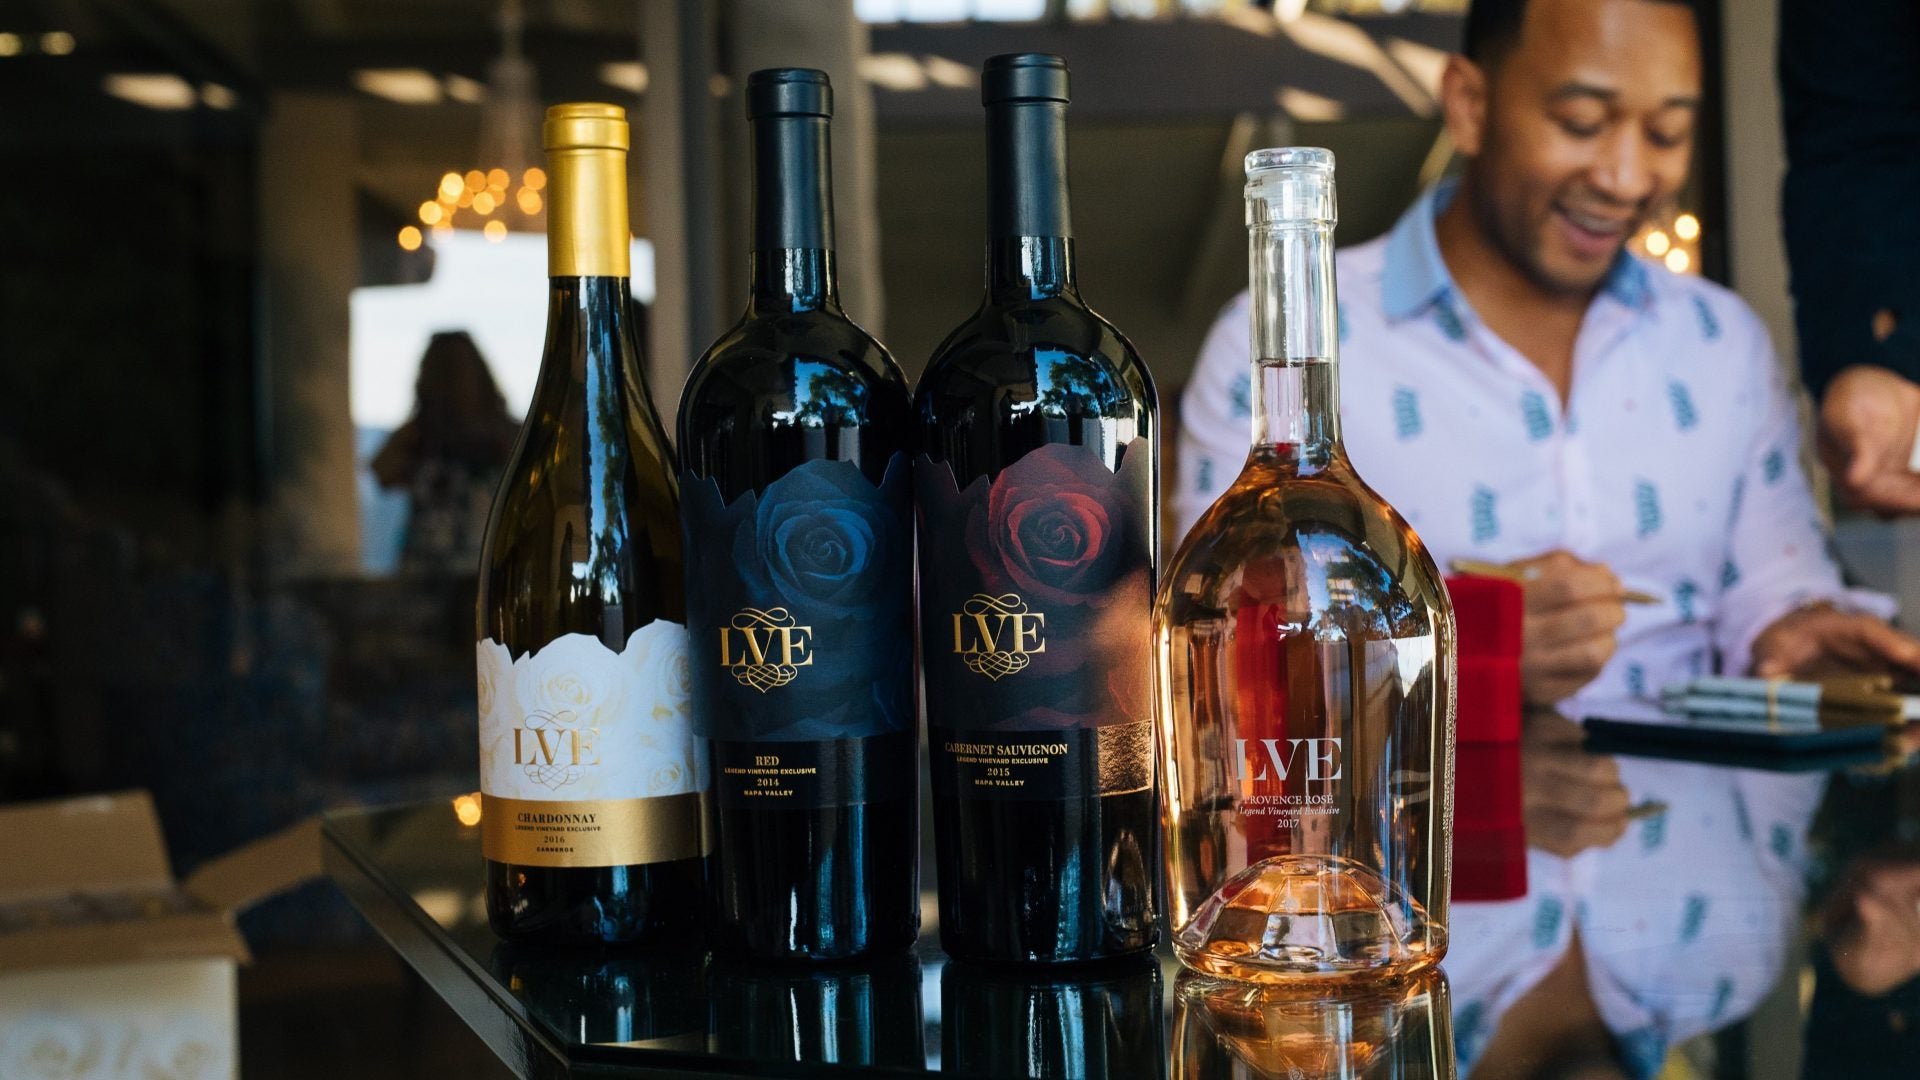 Sip Rosé This Memorial Day Weekend With John Legend and LVE Wines